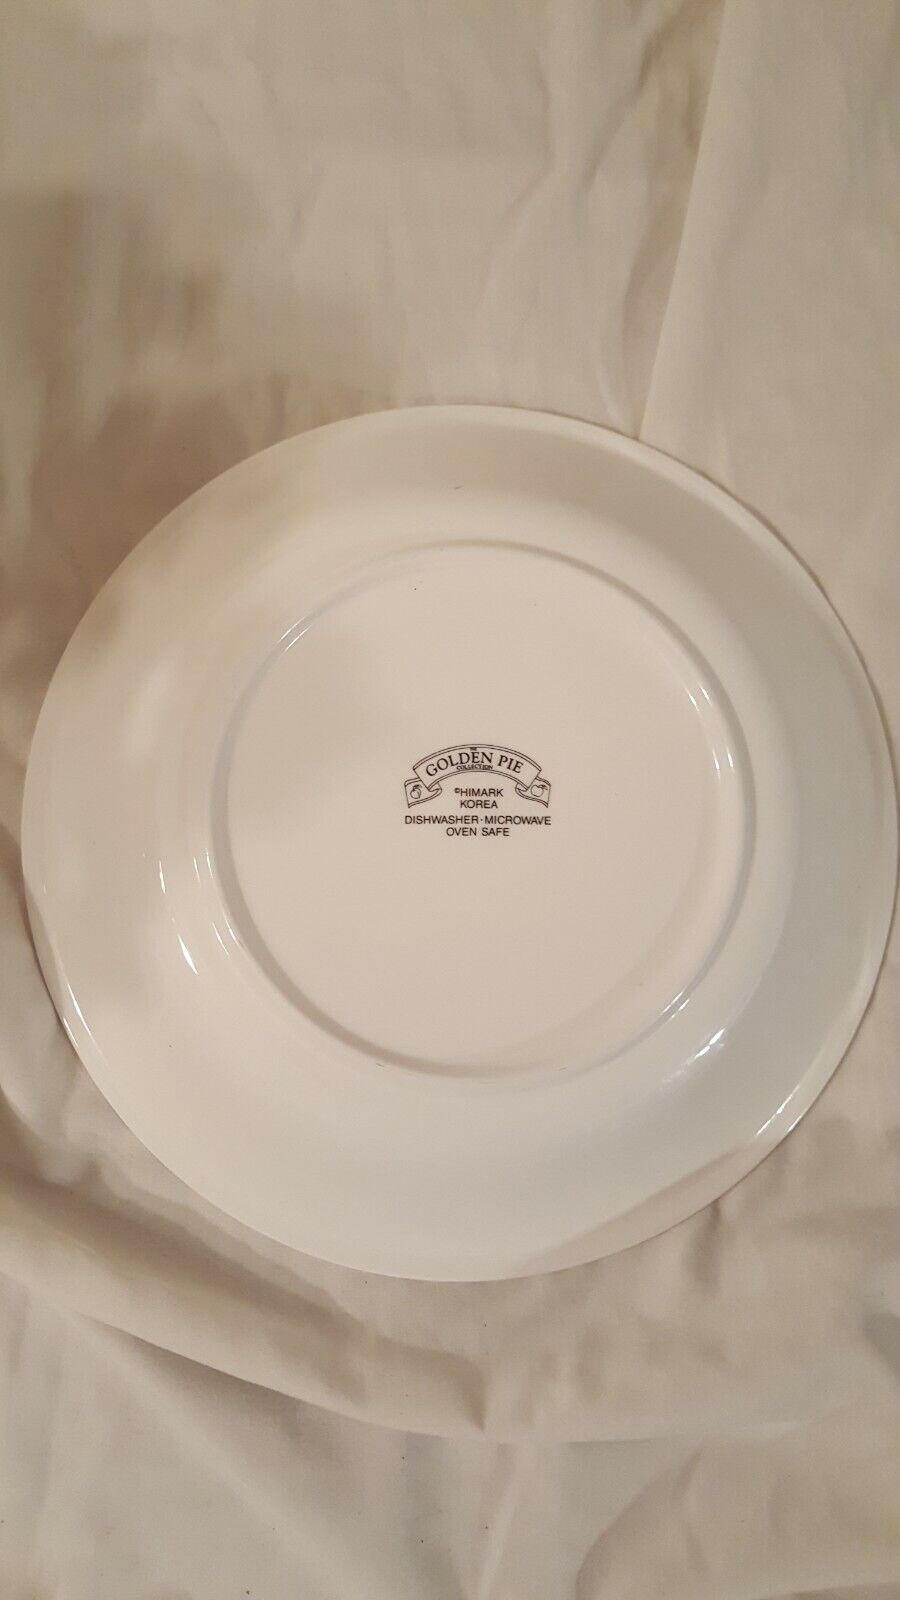 Plate With BLUEBERRY PIE Recipe On The Plate No Chips Or Cracks GREAT Condition  - $10.99